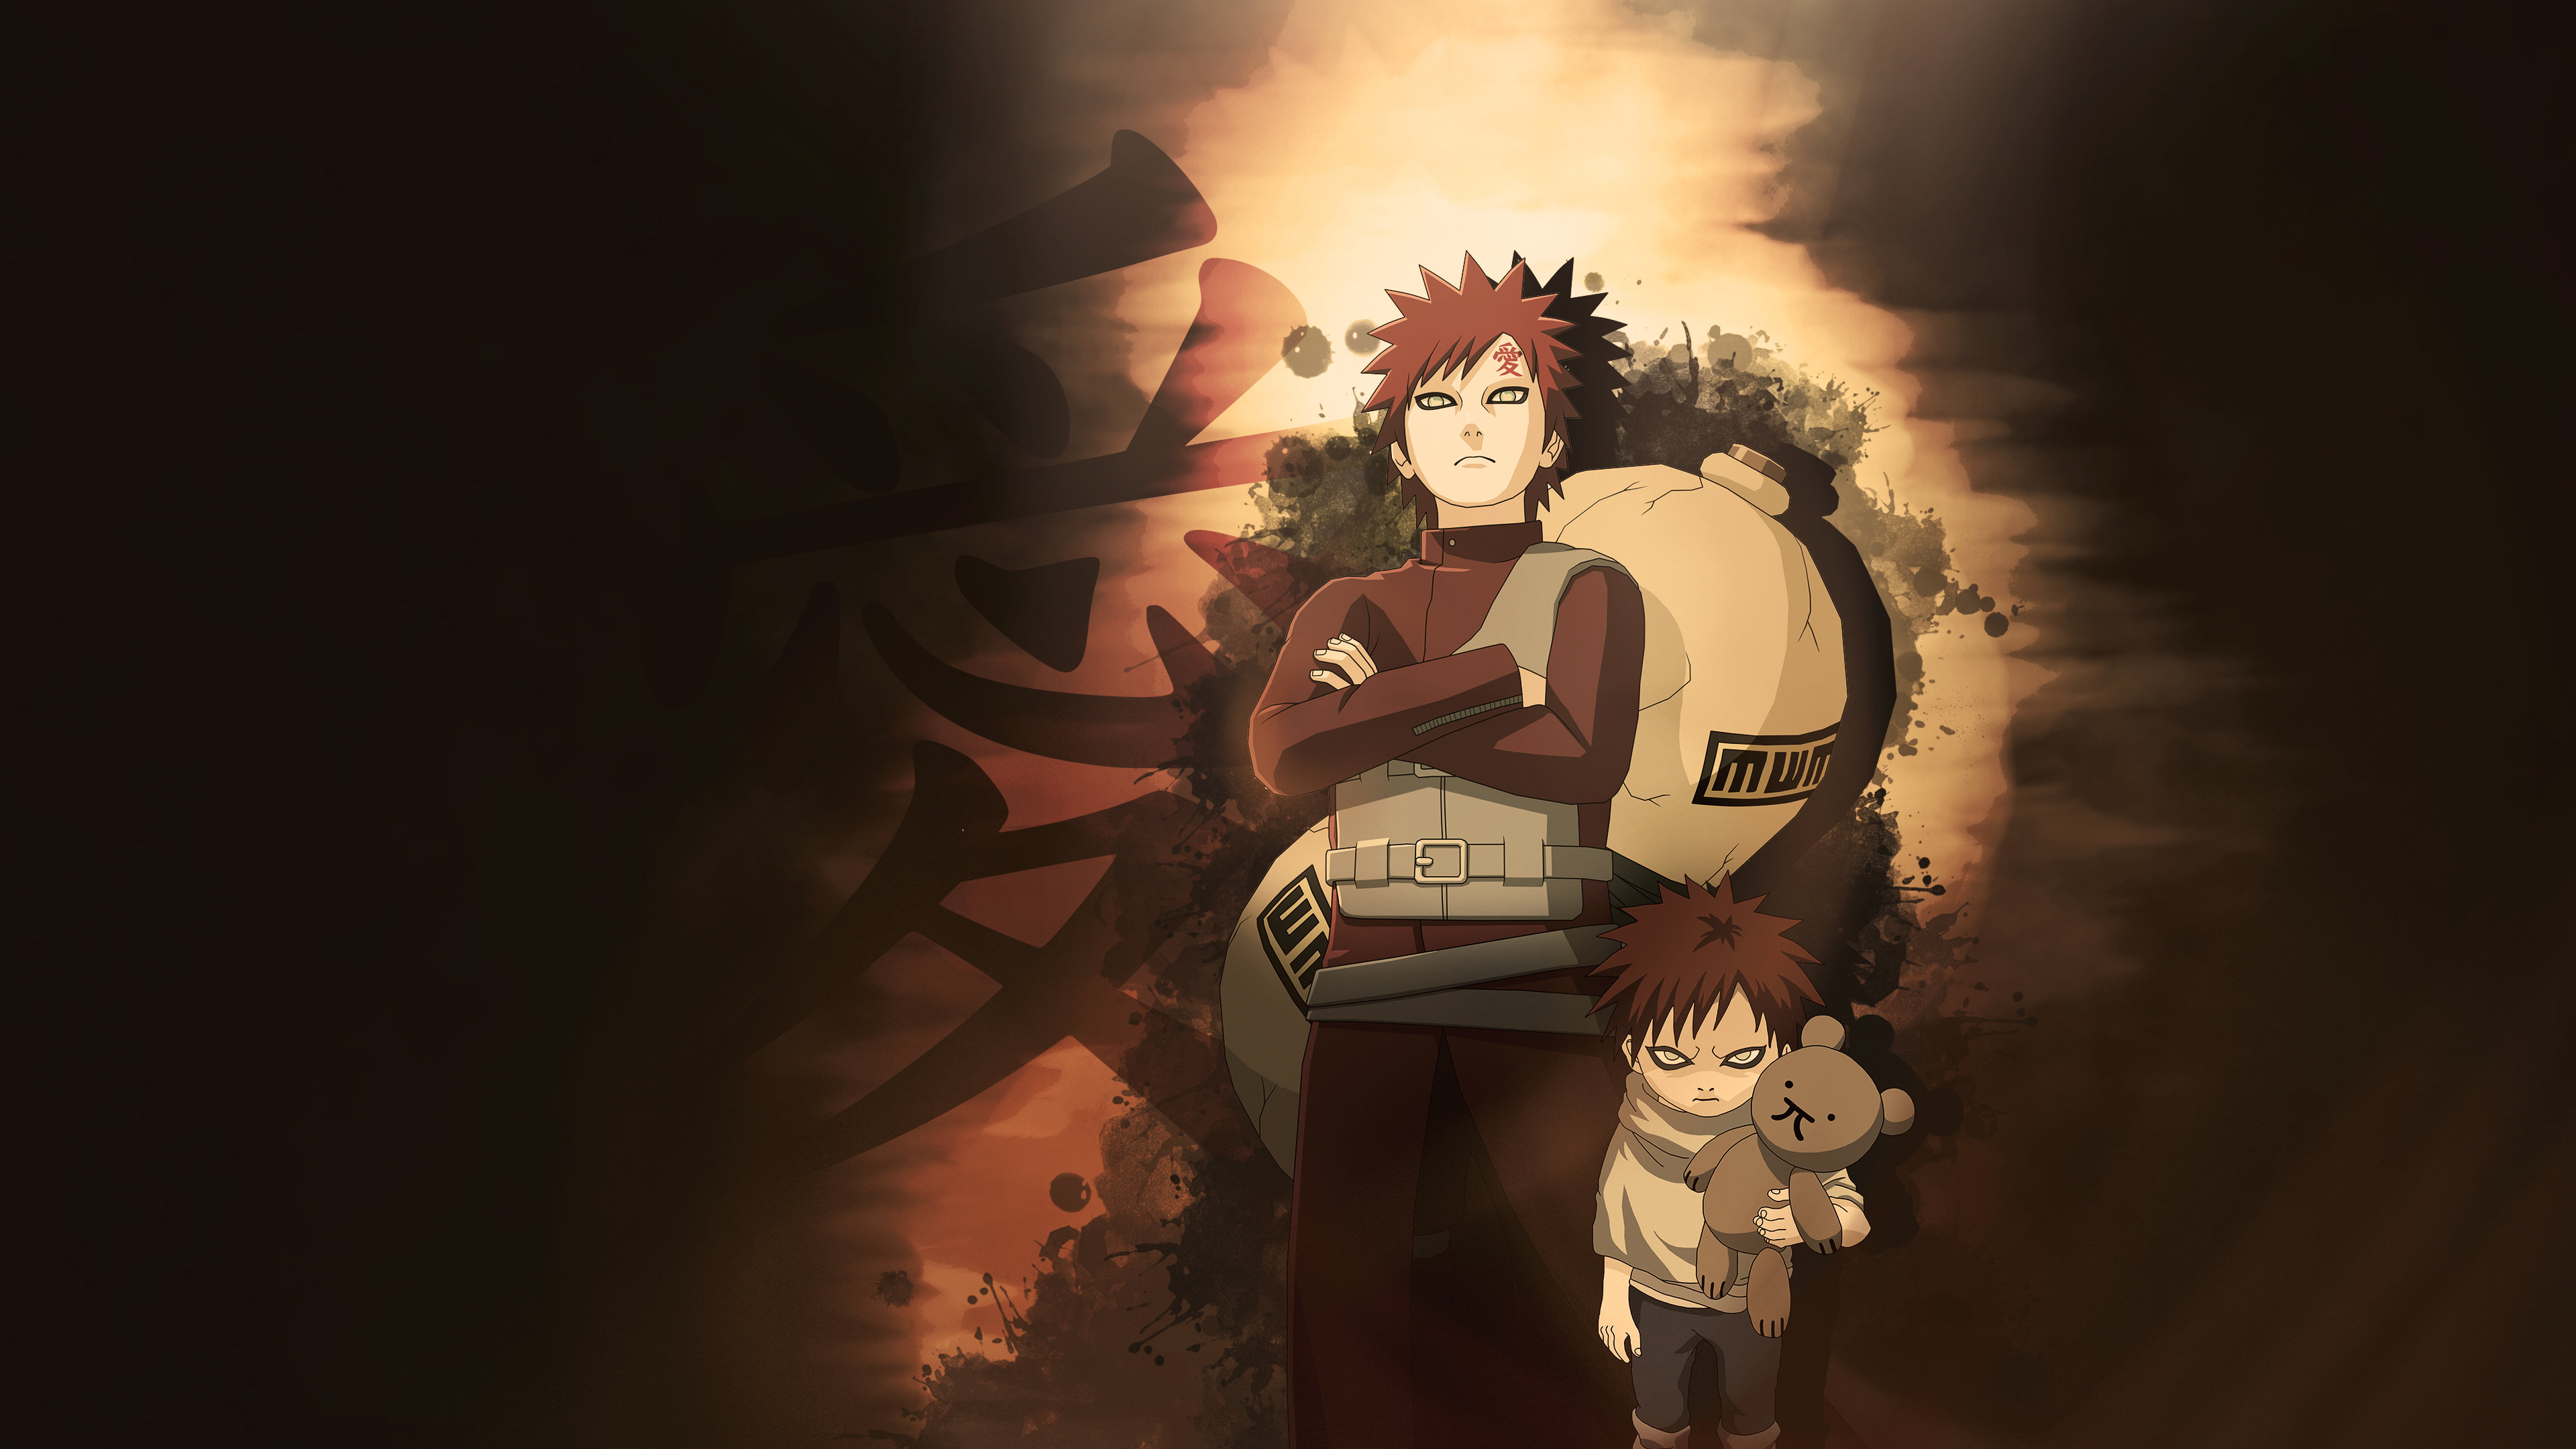 Download 4k Gaara (Naruto) desktop background ID:395257 for free